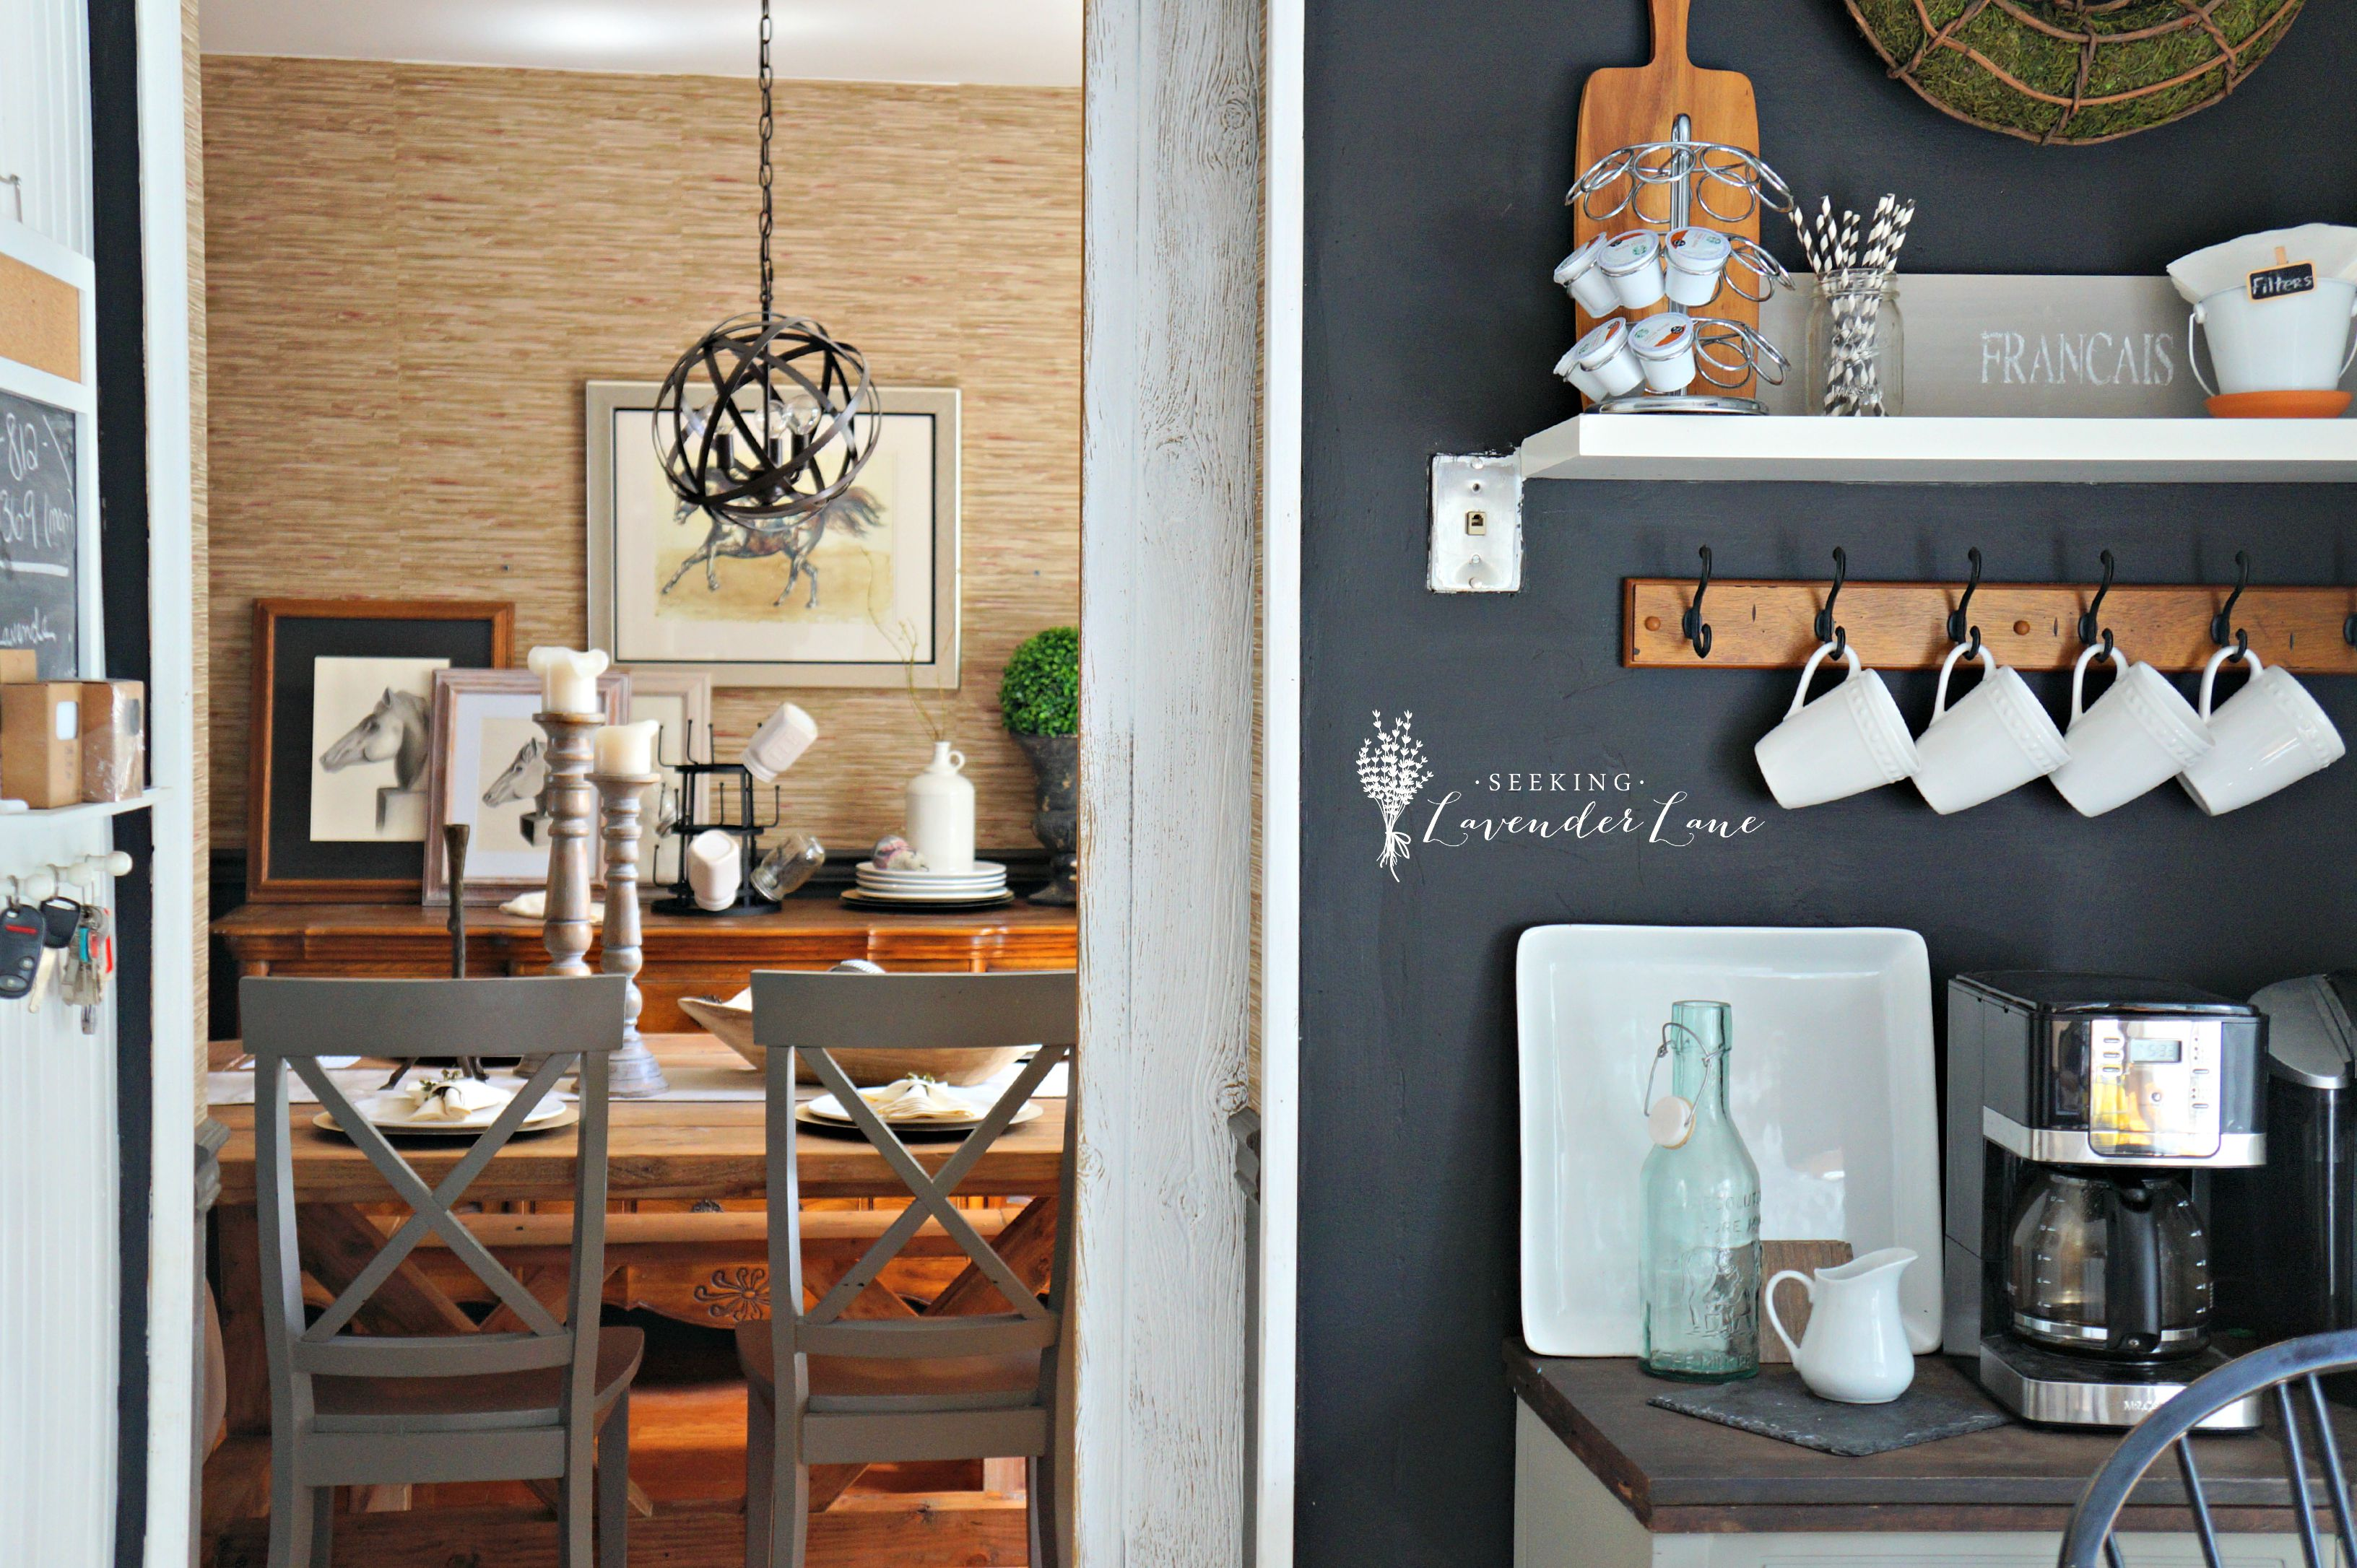 Adding drama with a chalkboard wall for Dining area wall ideas